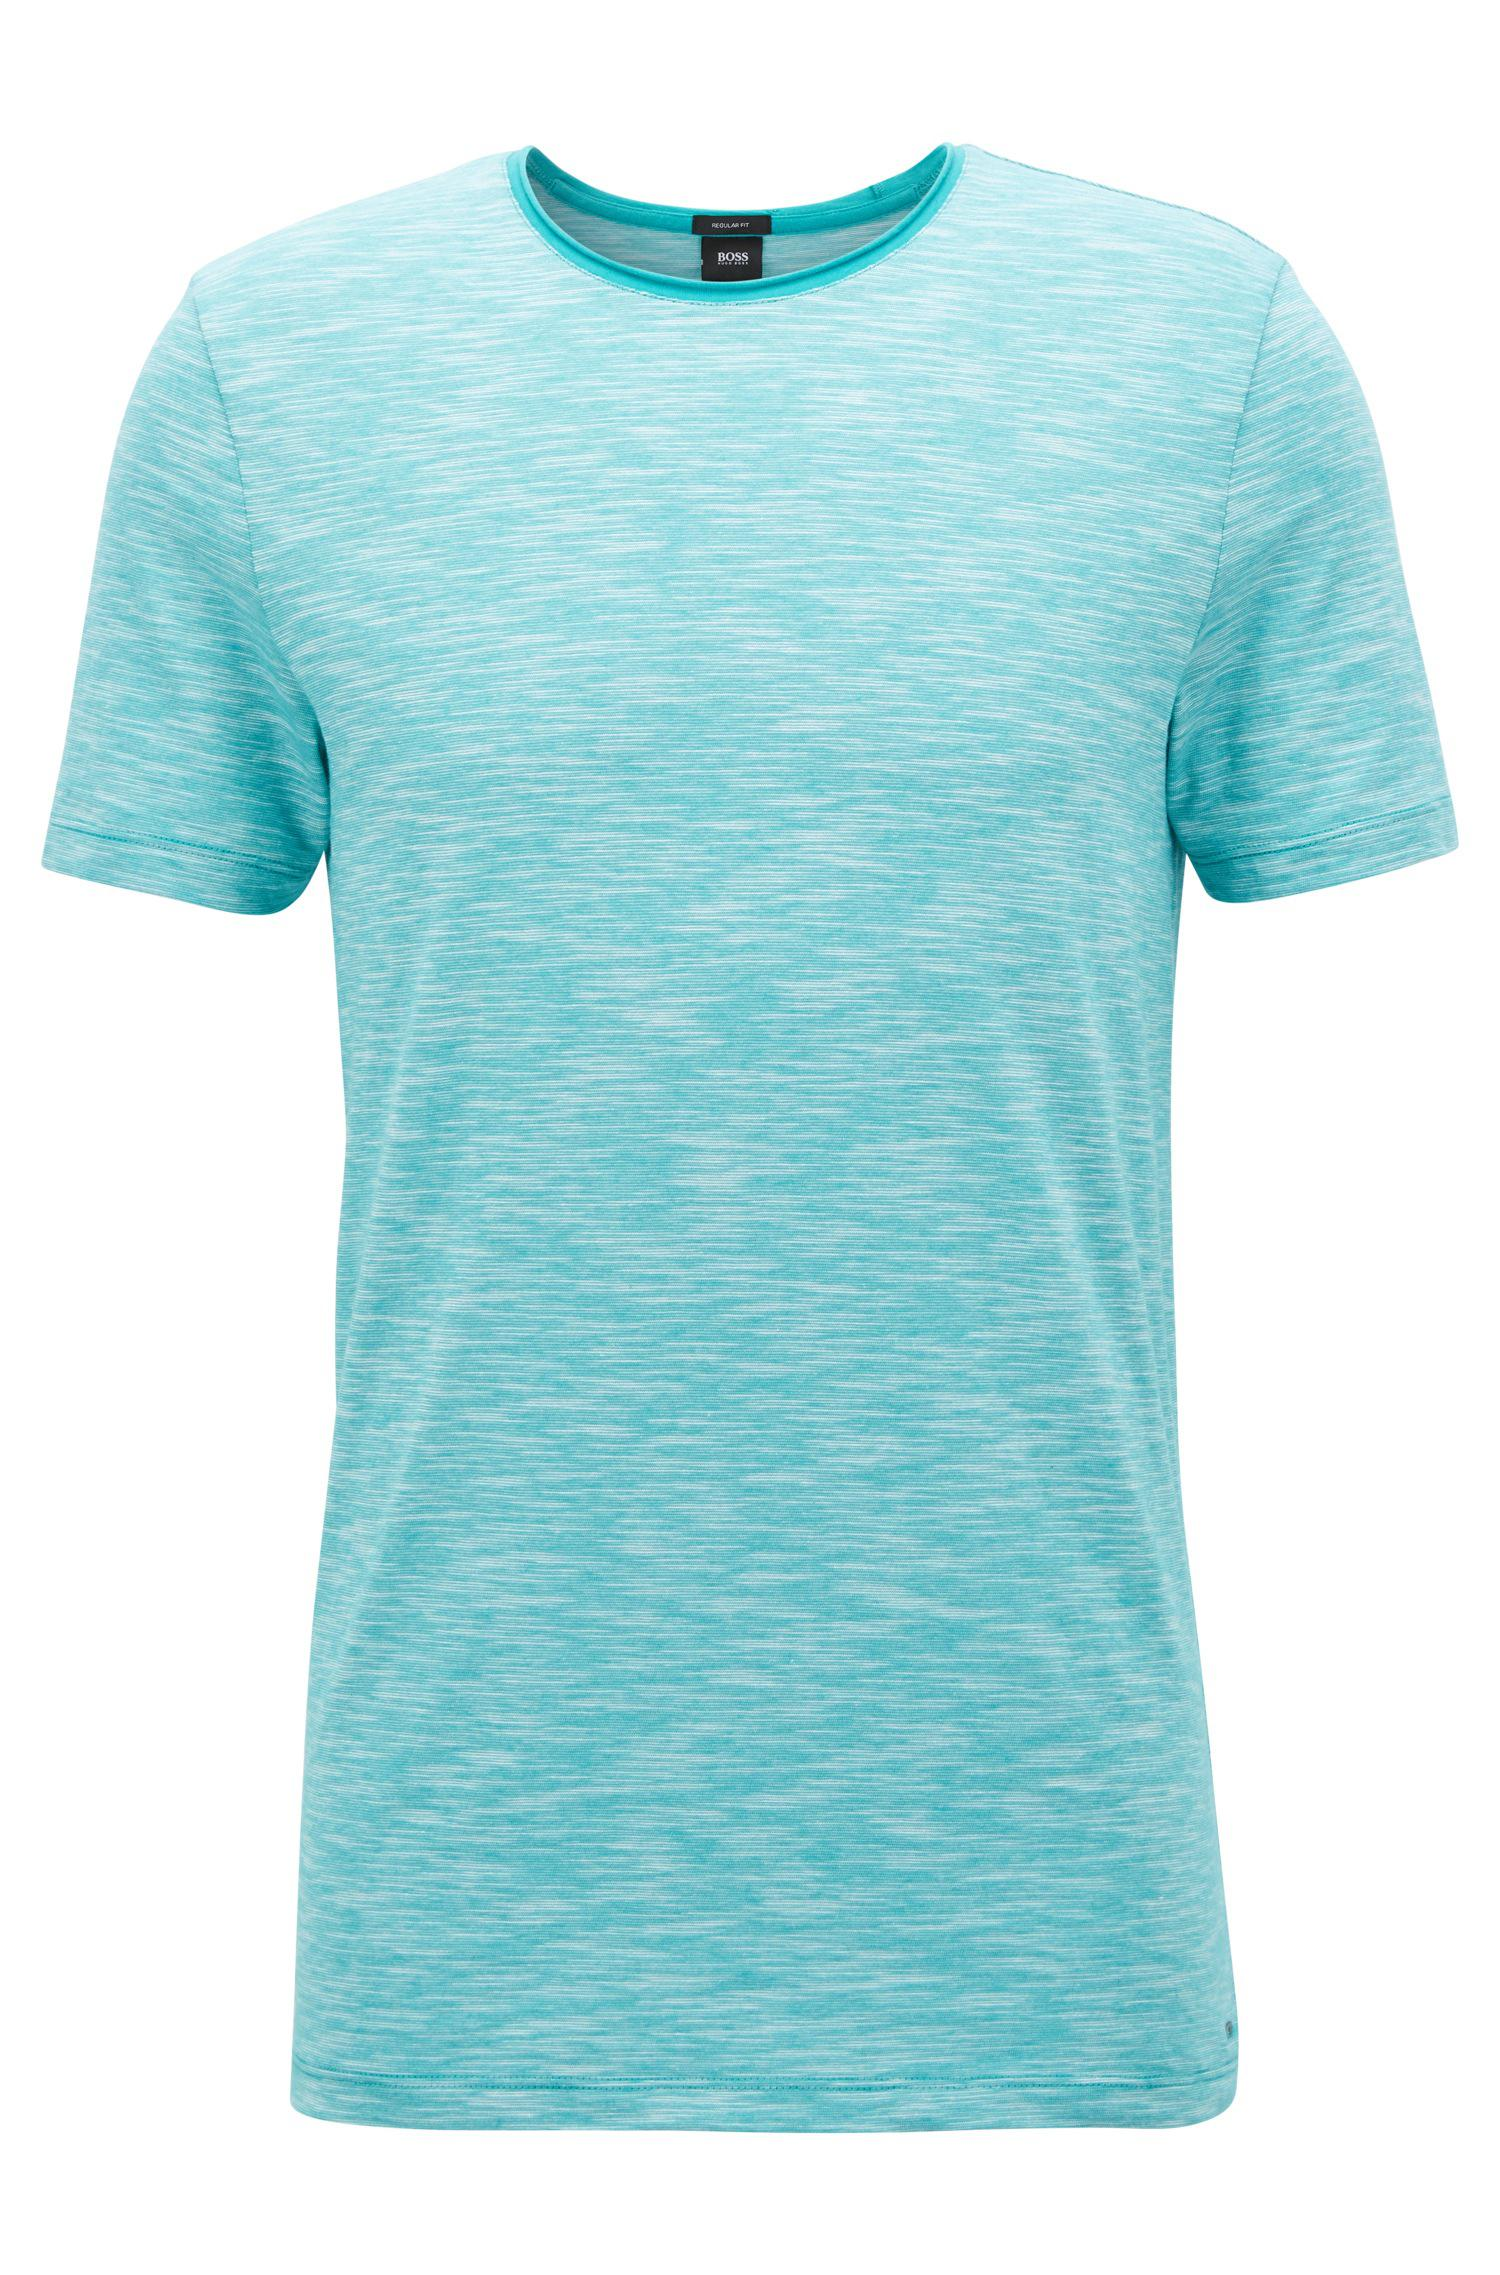 743cb0d3a Lyst - BOSS Mouliné T-shirt With Raw-cut Crew Neckline in Green for Men